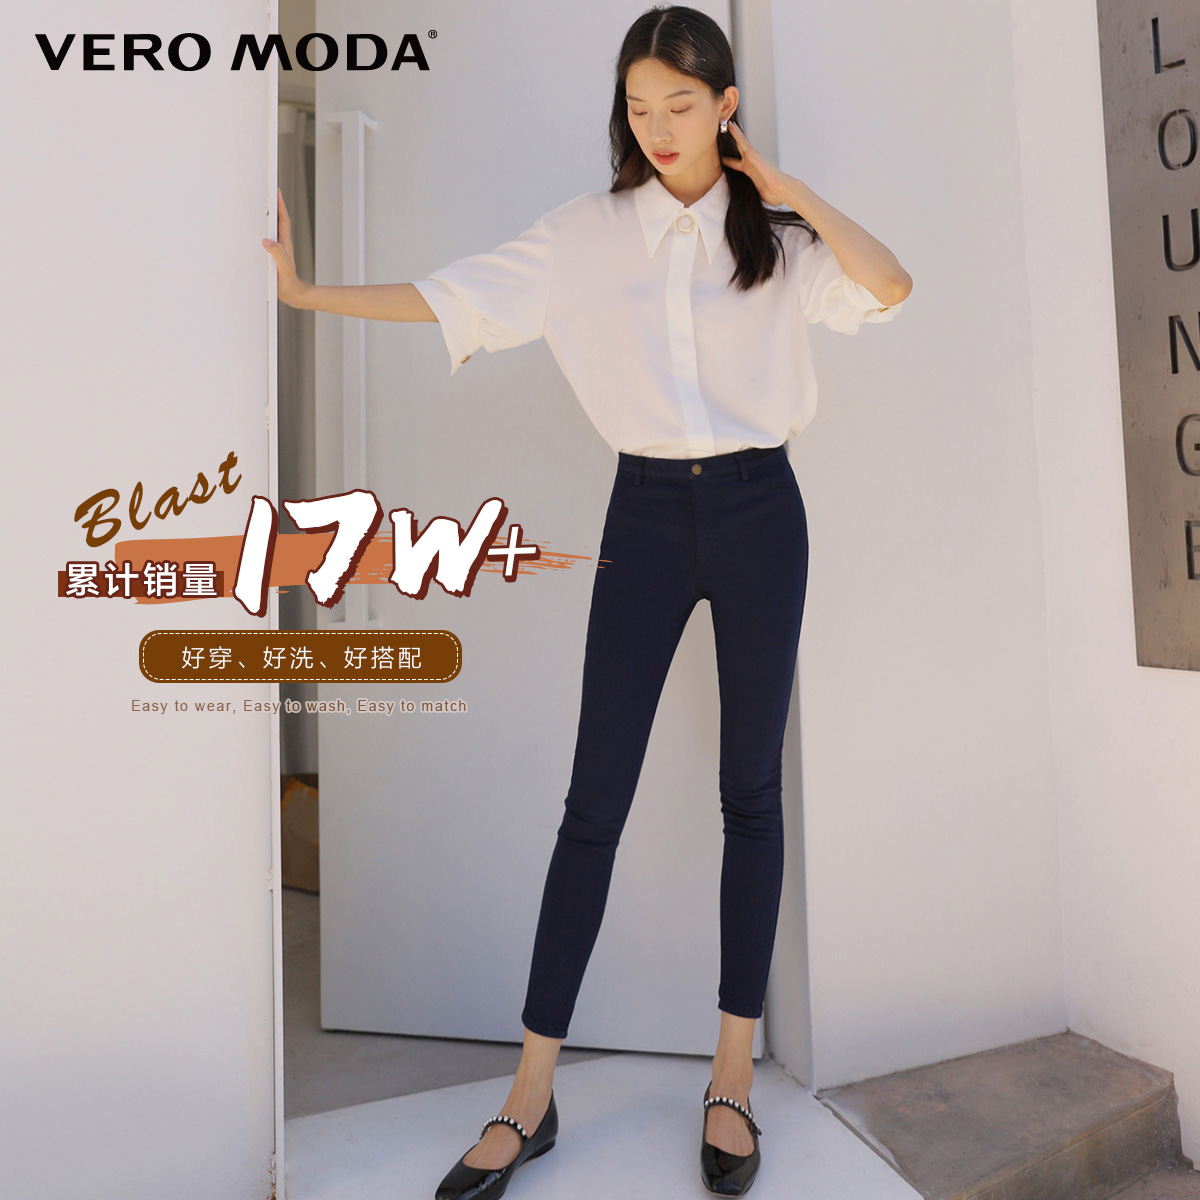 Vero Moda Slim Retro Thin All-match Hong Kong-style nine-point pants chic micro-elastic small feet explosion jeans women